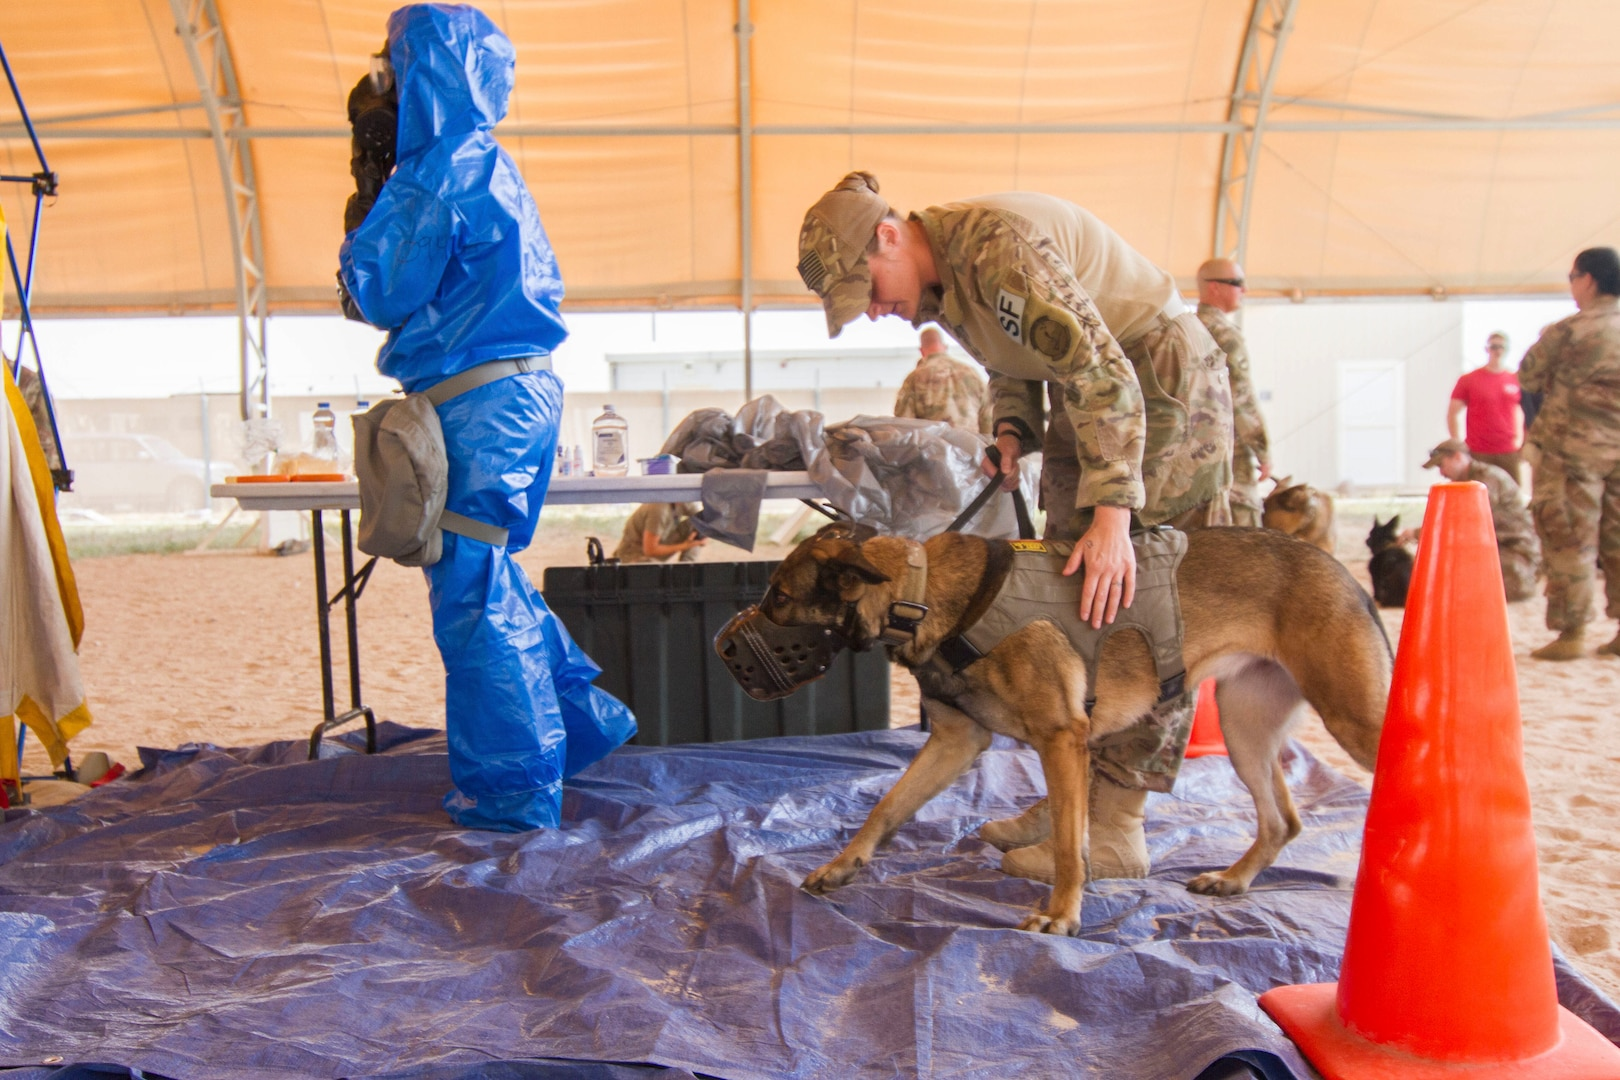 Air Force Staff Sgt. Porschia Easom, military working dog handler, 386th Expeditionary Security Forces Squadron, leads her military working dog, Beki, a Belgian Malinois that does bite work and finds explosives, to the decontamination area to conduct chemical, biological, radiological , or nuclear (CBRN) decontamination training in Kuwait April 11, 2019. Members of the 637th Chemical Company, the 719th Medical Detachment Veterinary Service Support, and the 386th Expeditionary Security Forces Squadron came together to conduct a live exercise to train to save the lives of military working dogs and their handlers in the event they were exposed to a CBRN substance. Live training events help prepare service members for real world events which may require them to recall the skills they learned in training to stay in the fight and survive.